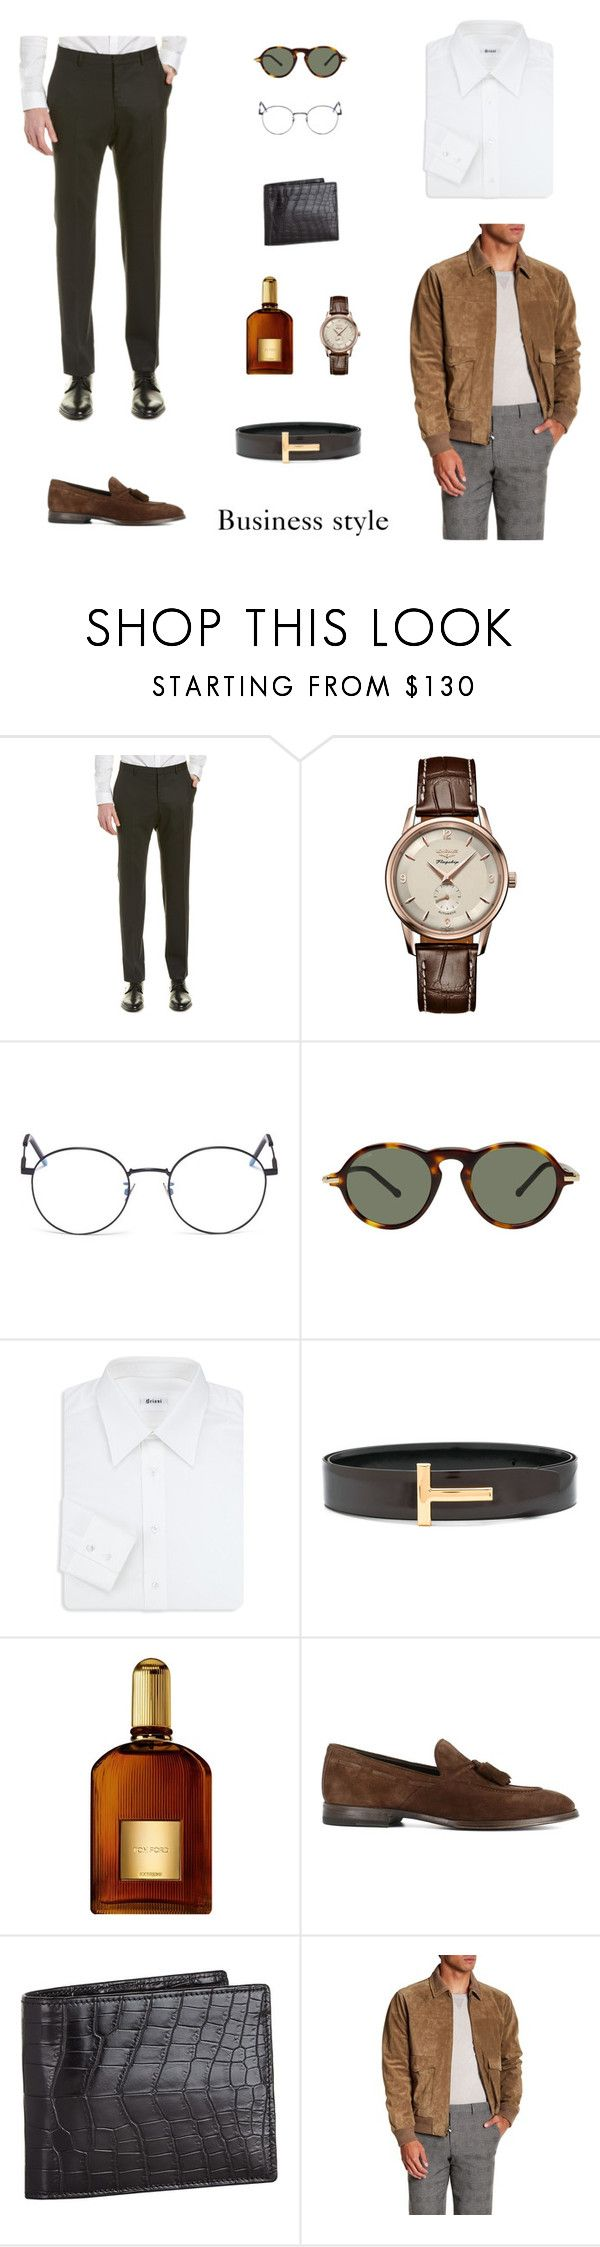 """Fashion"" by votonaire on Polyvore featuring Zegna, Longines, Yves Saint Laurent, Loewe, Brioni, Tom Ford, Henderson, Zilli, Vince и men's fashion"